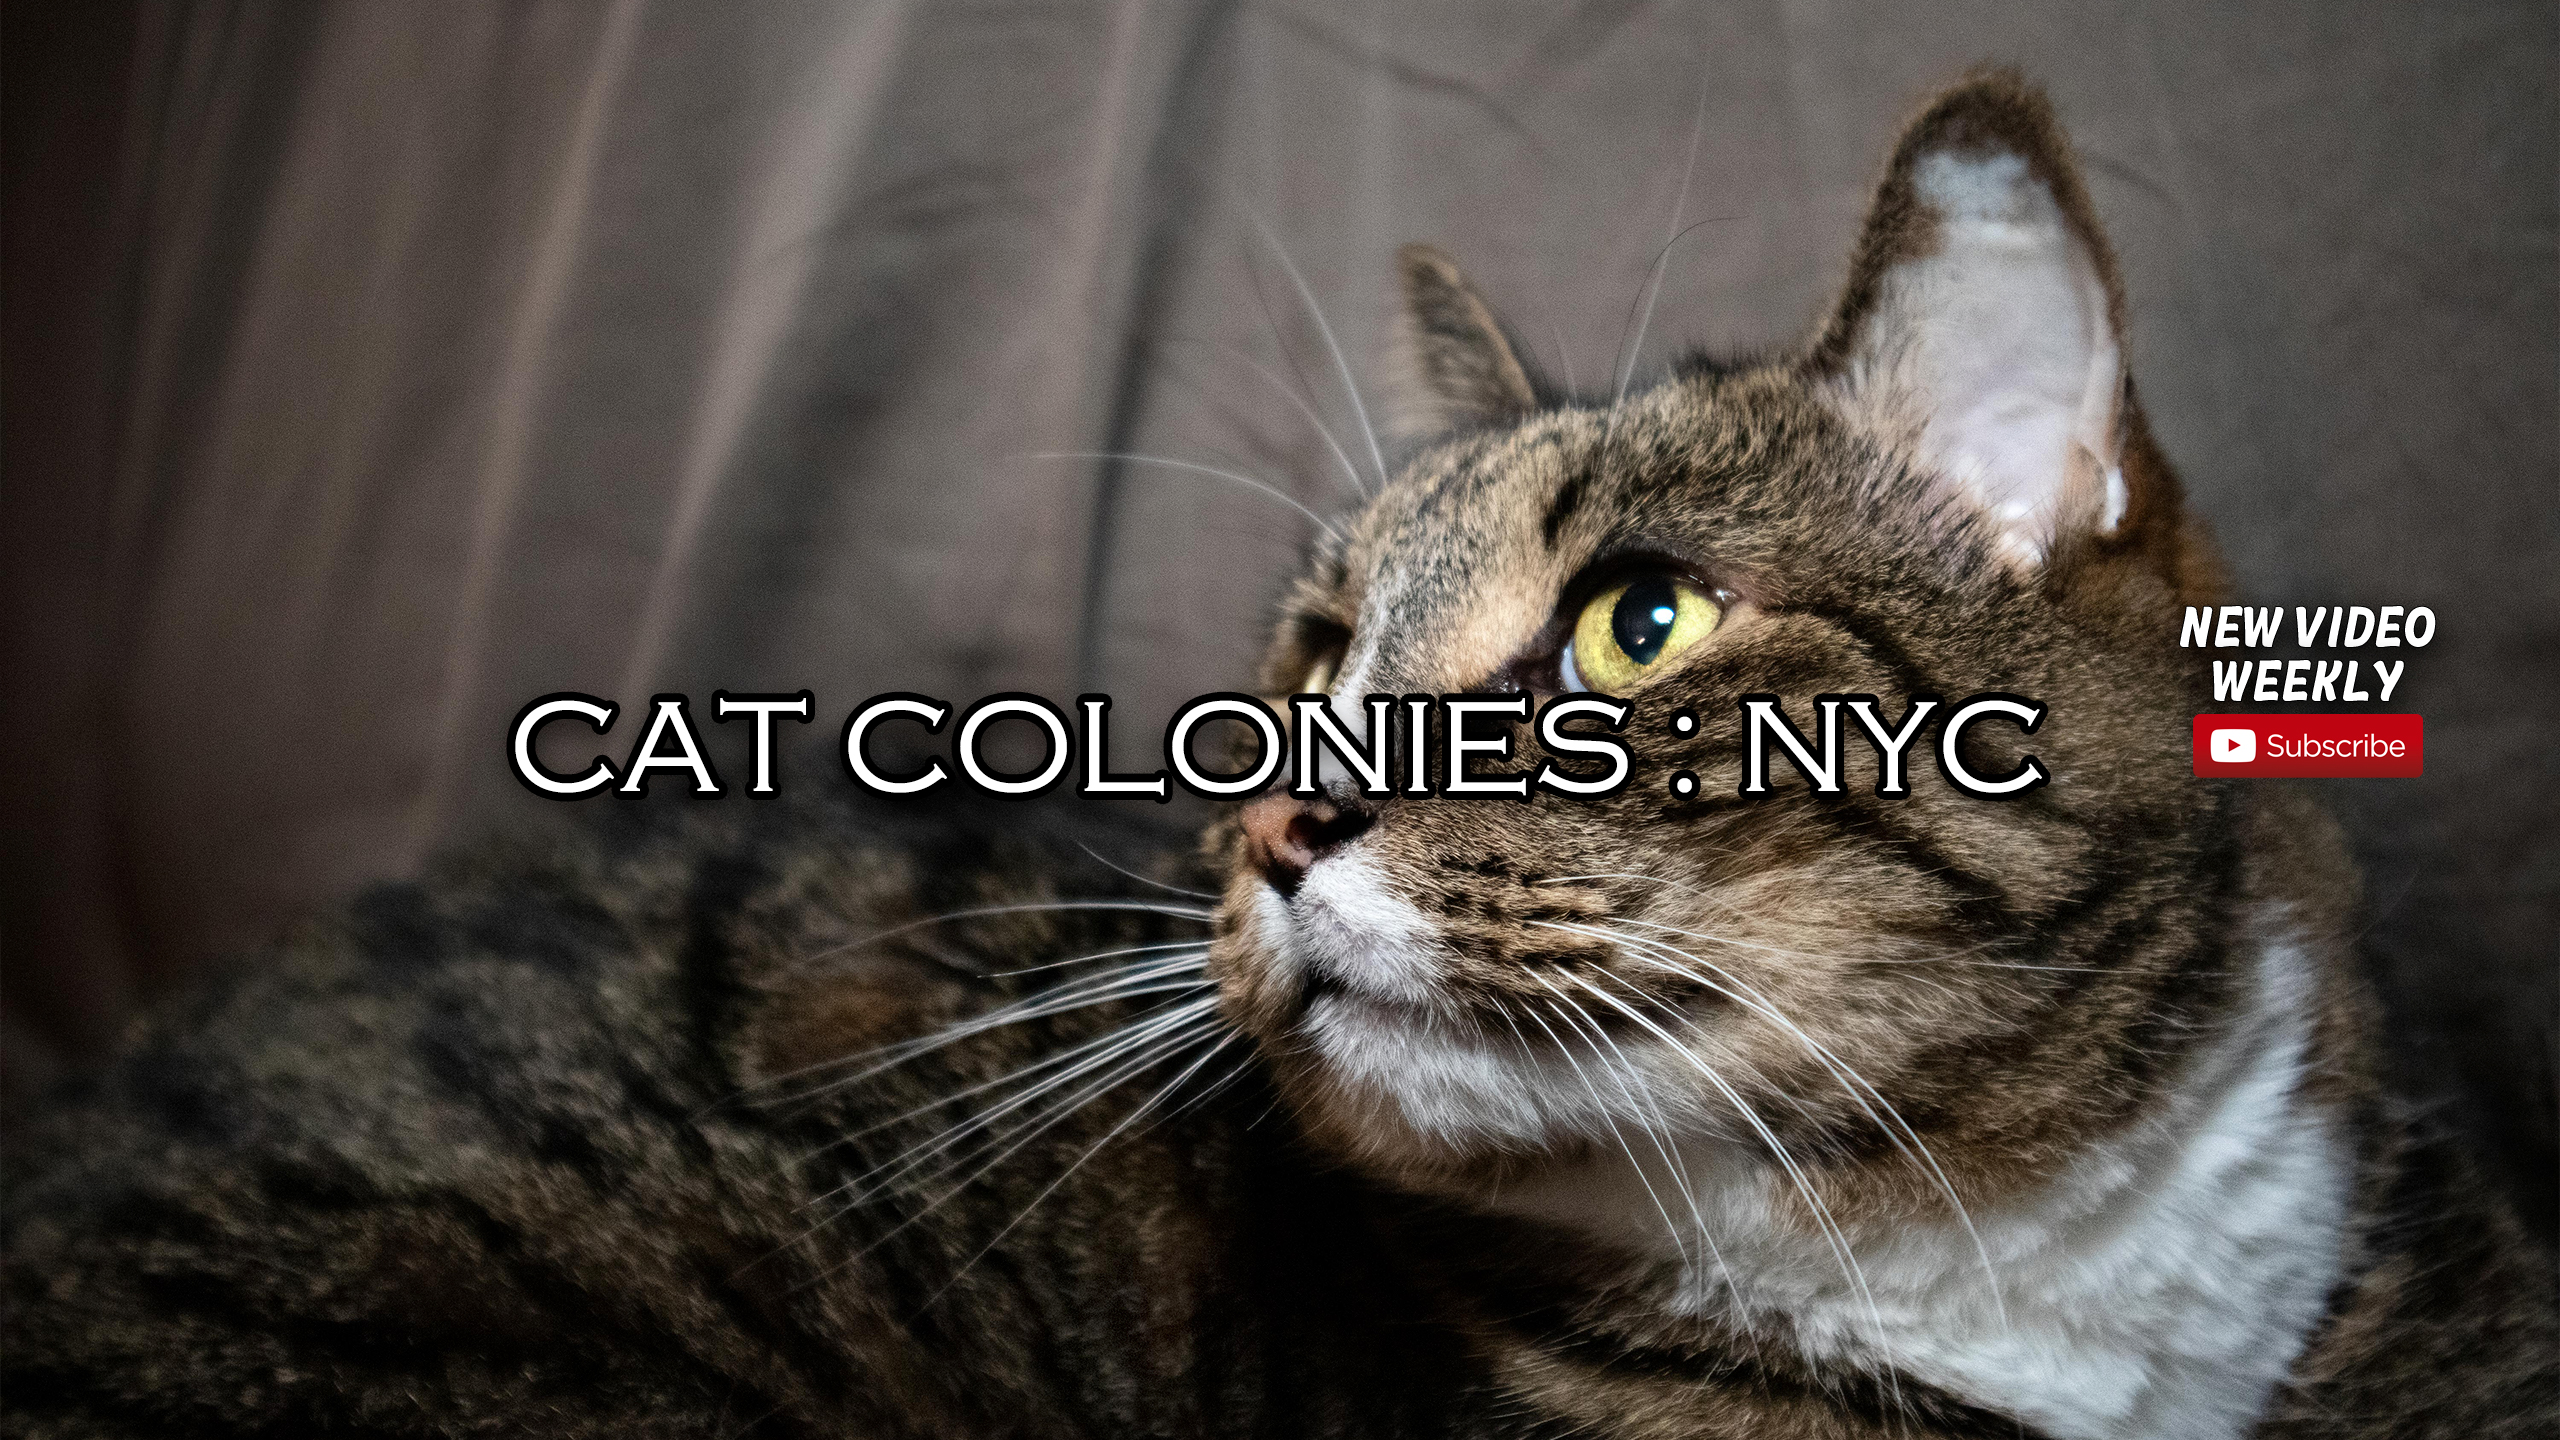 """Cat Colonies"" Highlight the Plight of NYC Cat Colonies and Efforts of Samaritans to Rescue Them"